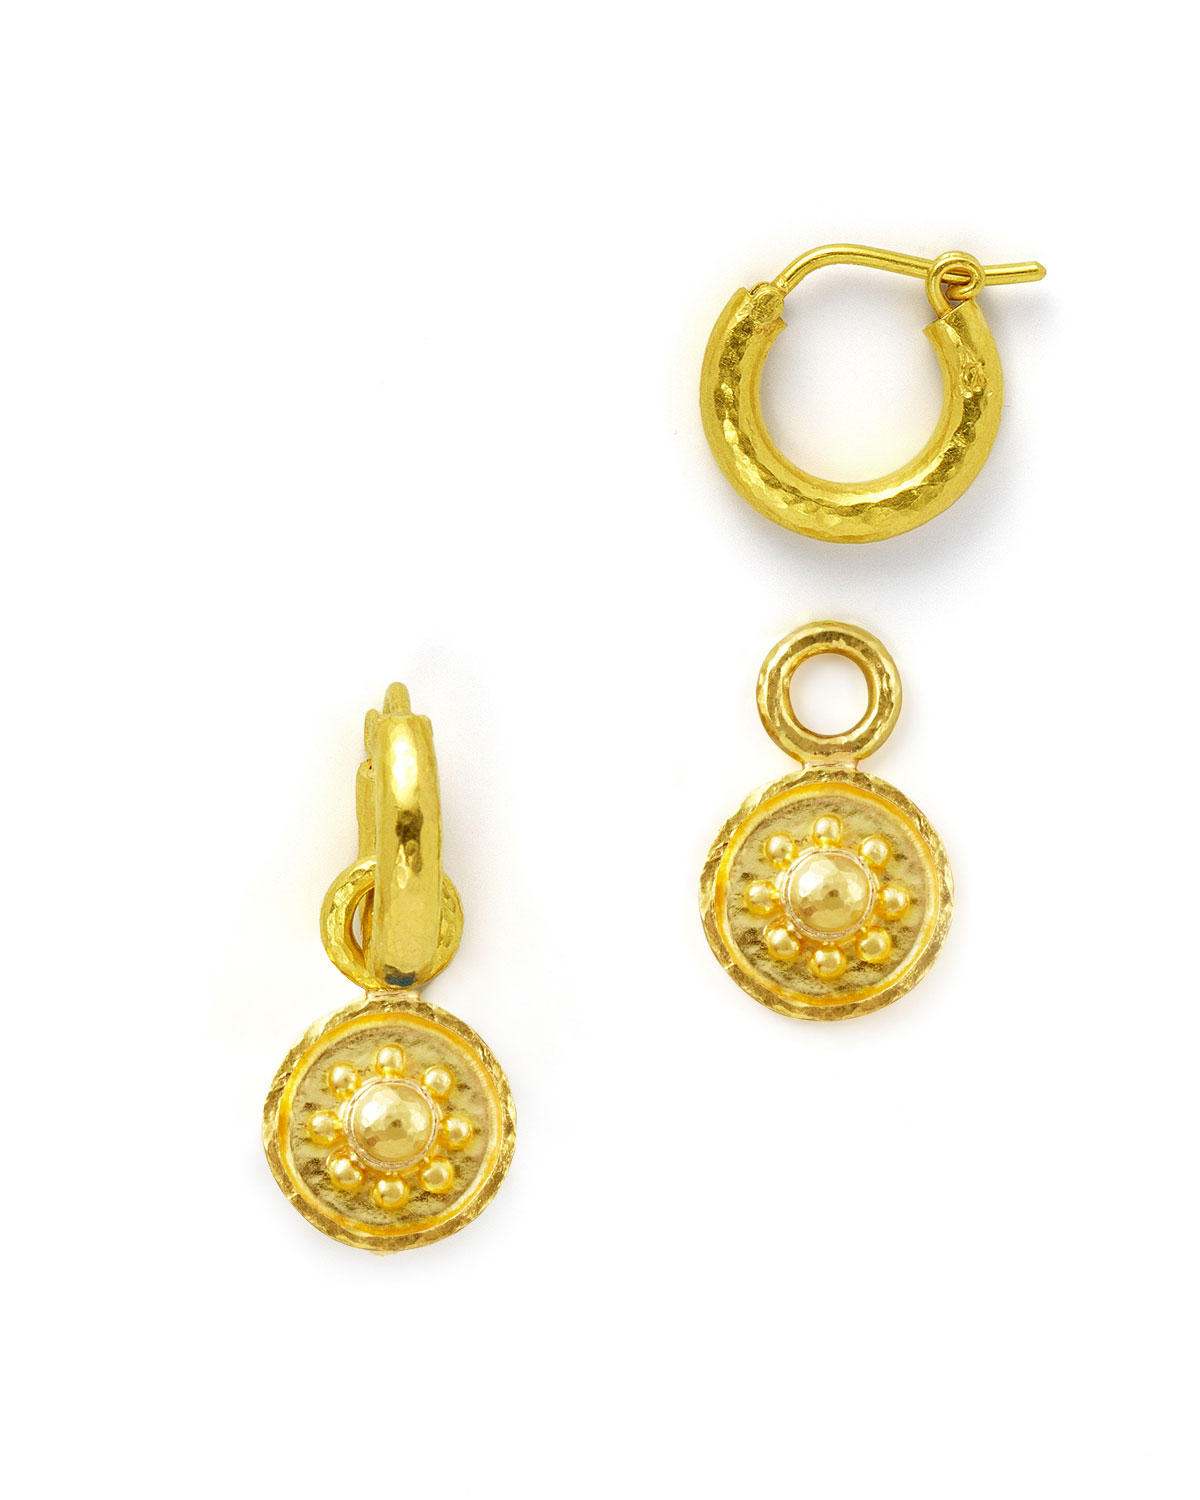 Elizabeth Locke 19k Gold Daisy Disc Earring Pendants jEBb80